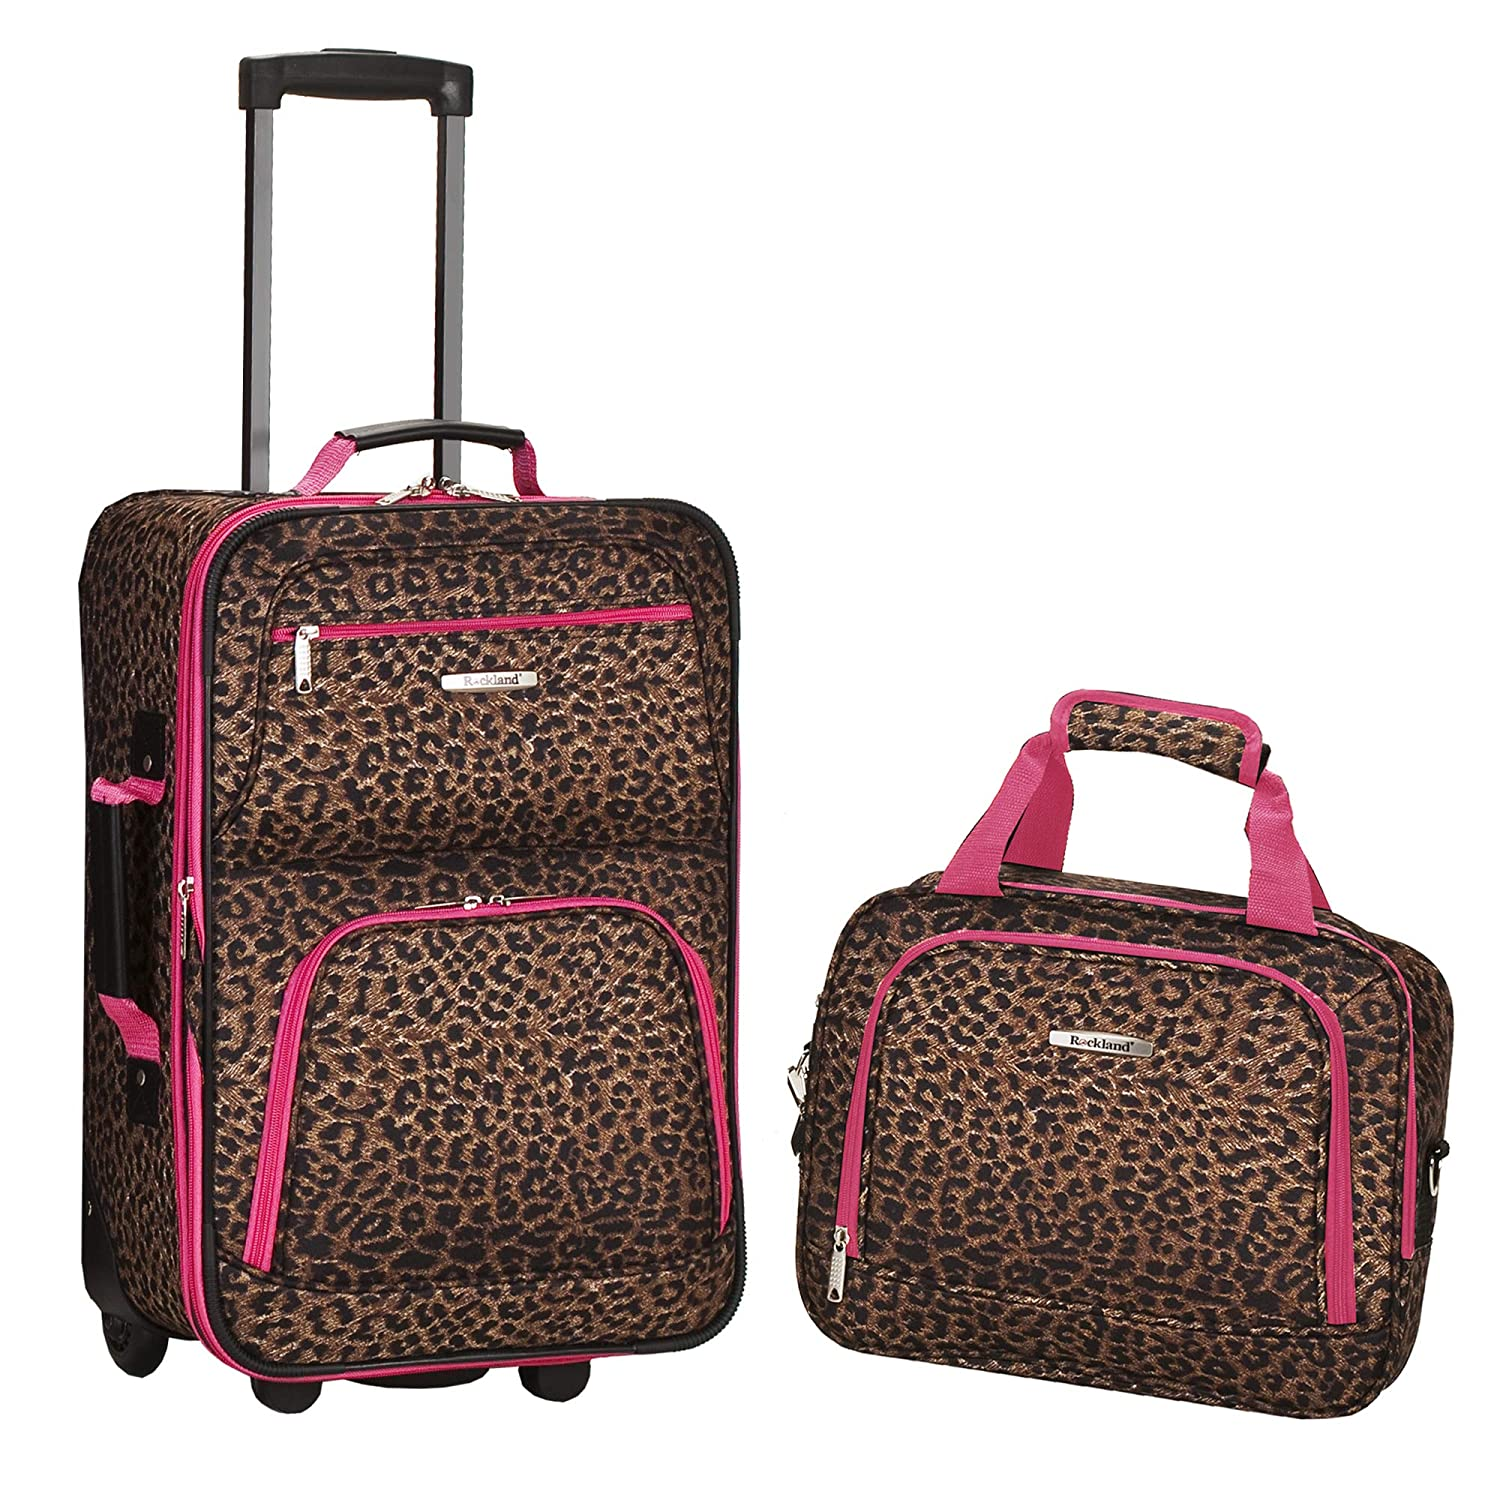 Rockland Luggage 2 Piece Printed Set, Pink Leopard, Medium